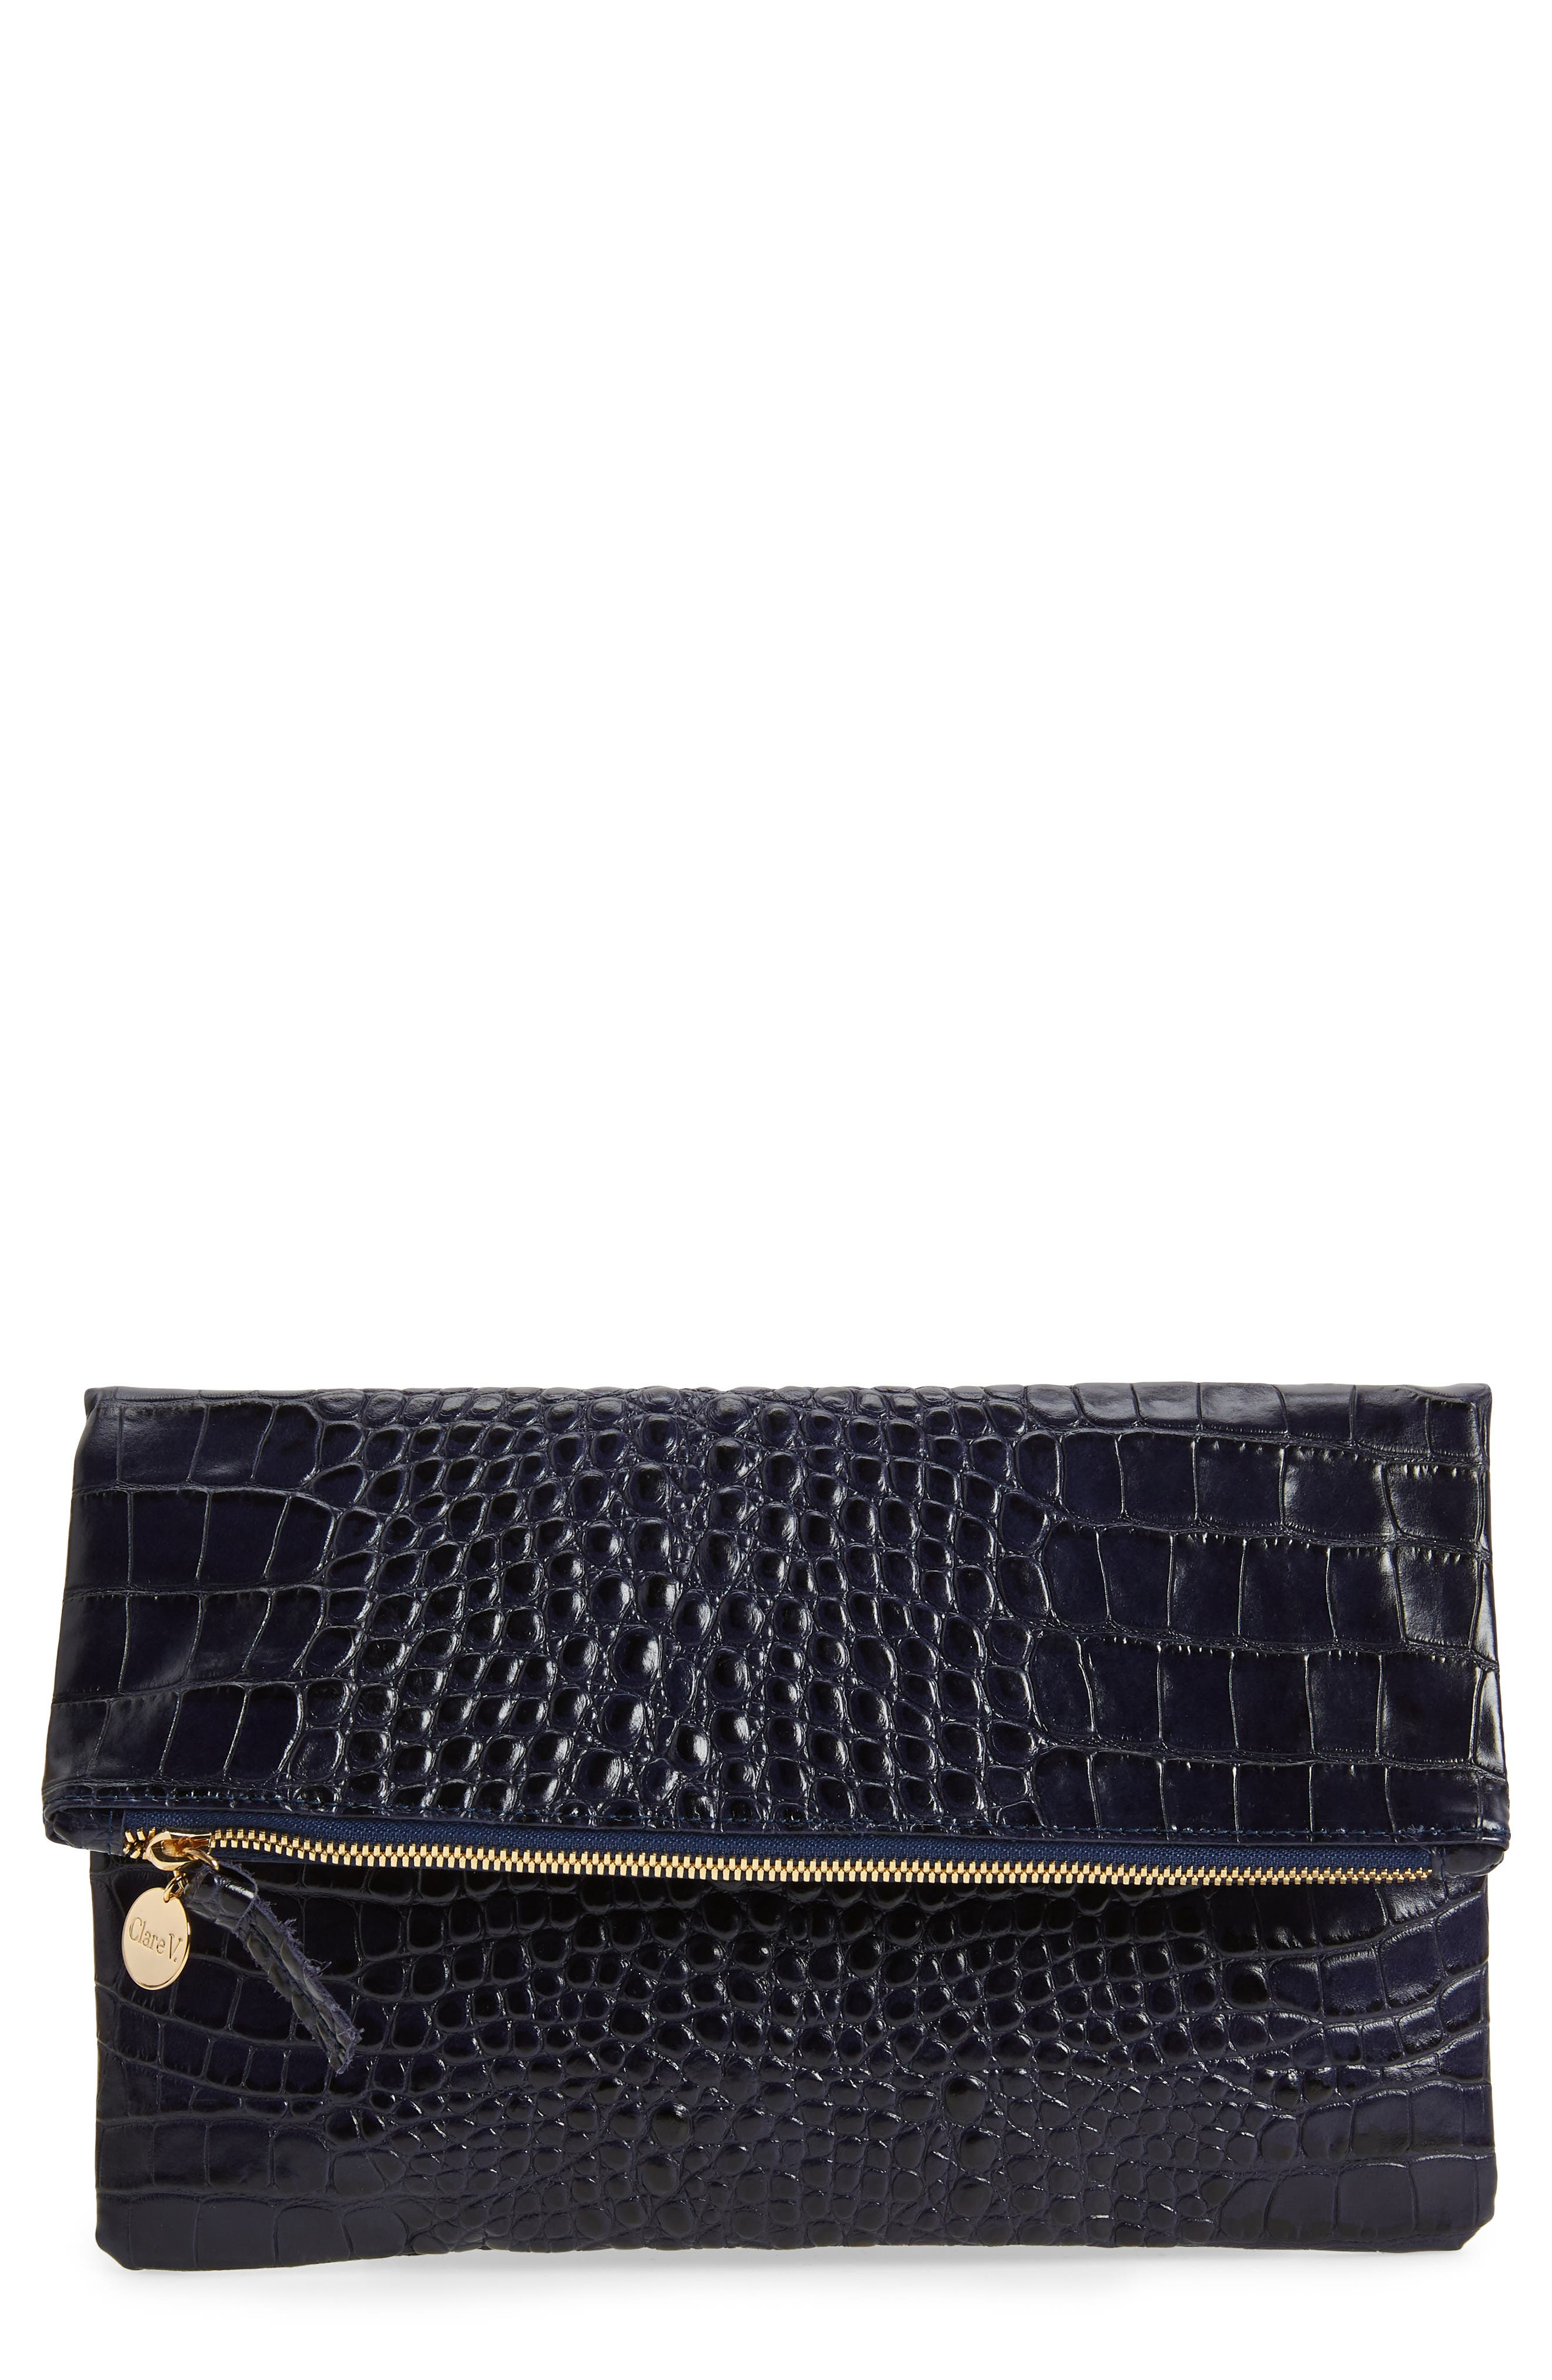 Croc Embossed Leather Foldover Clutch,                         Main,                         color, MIDNIGHT CROCO